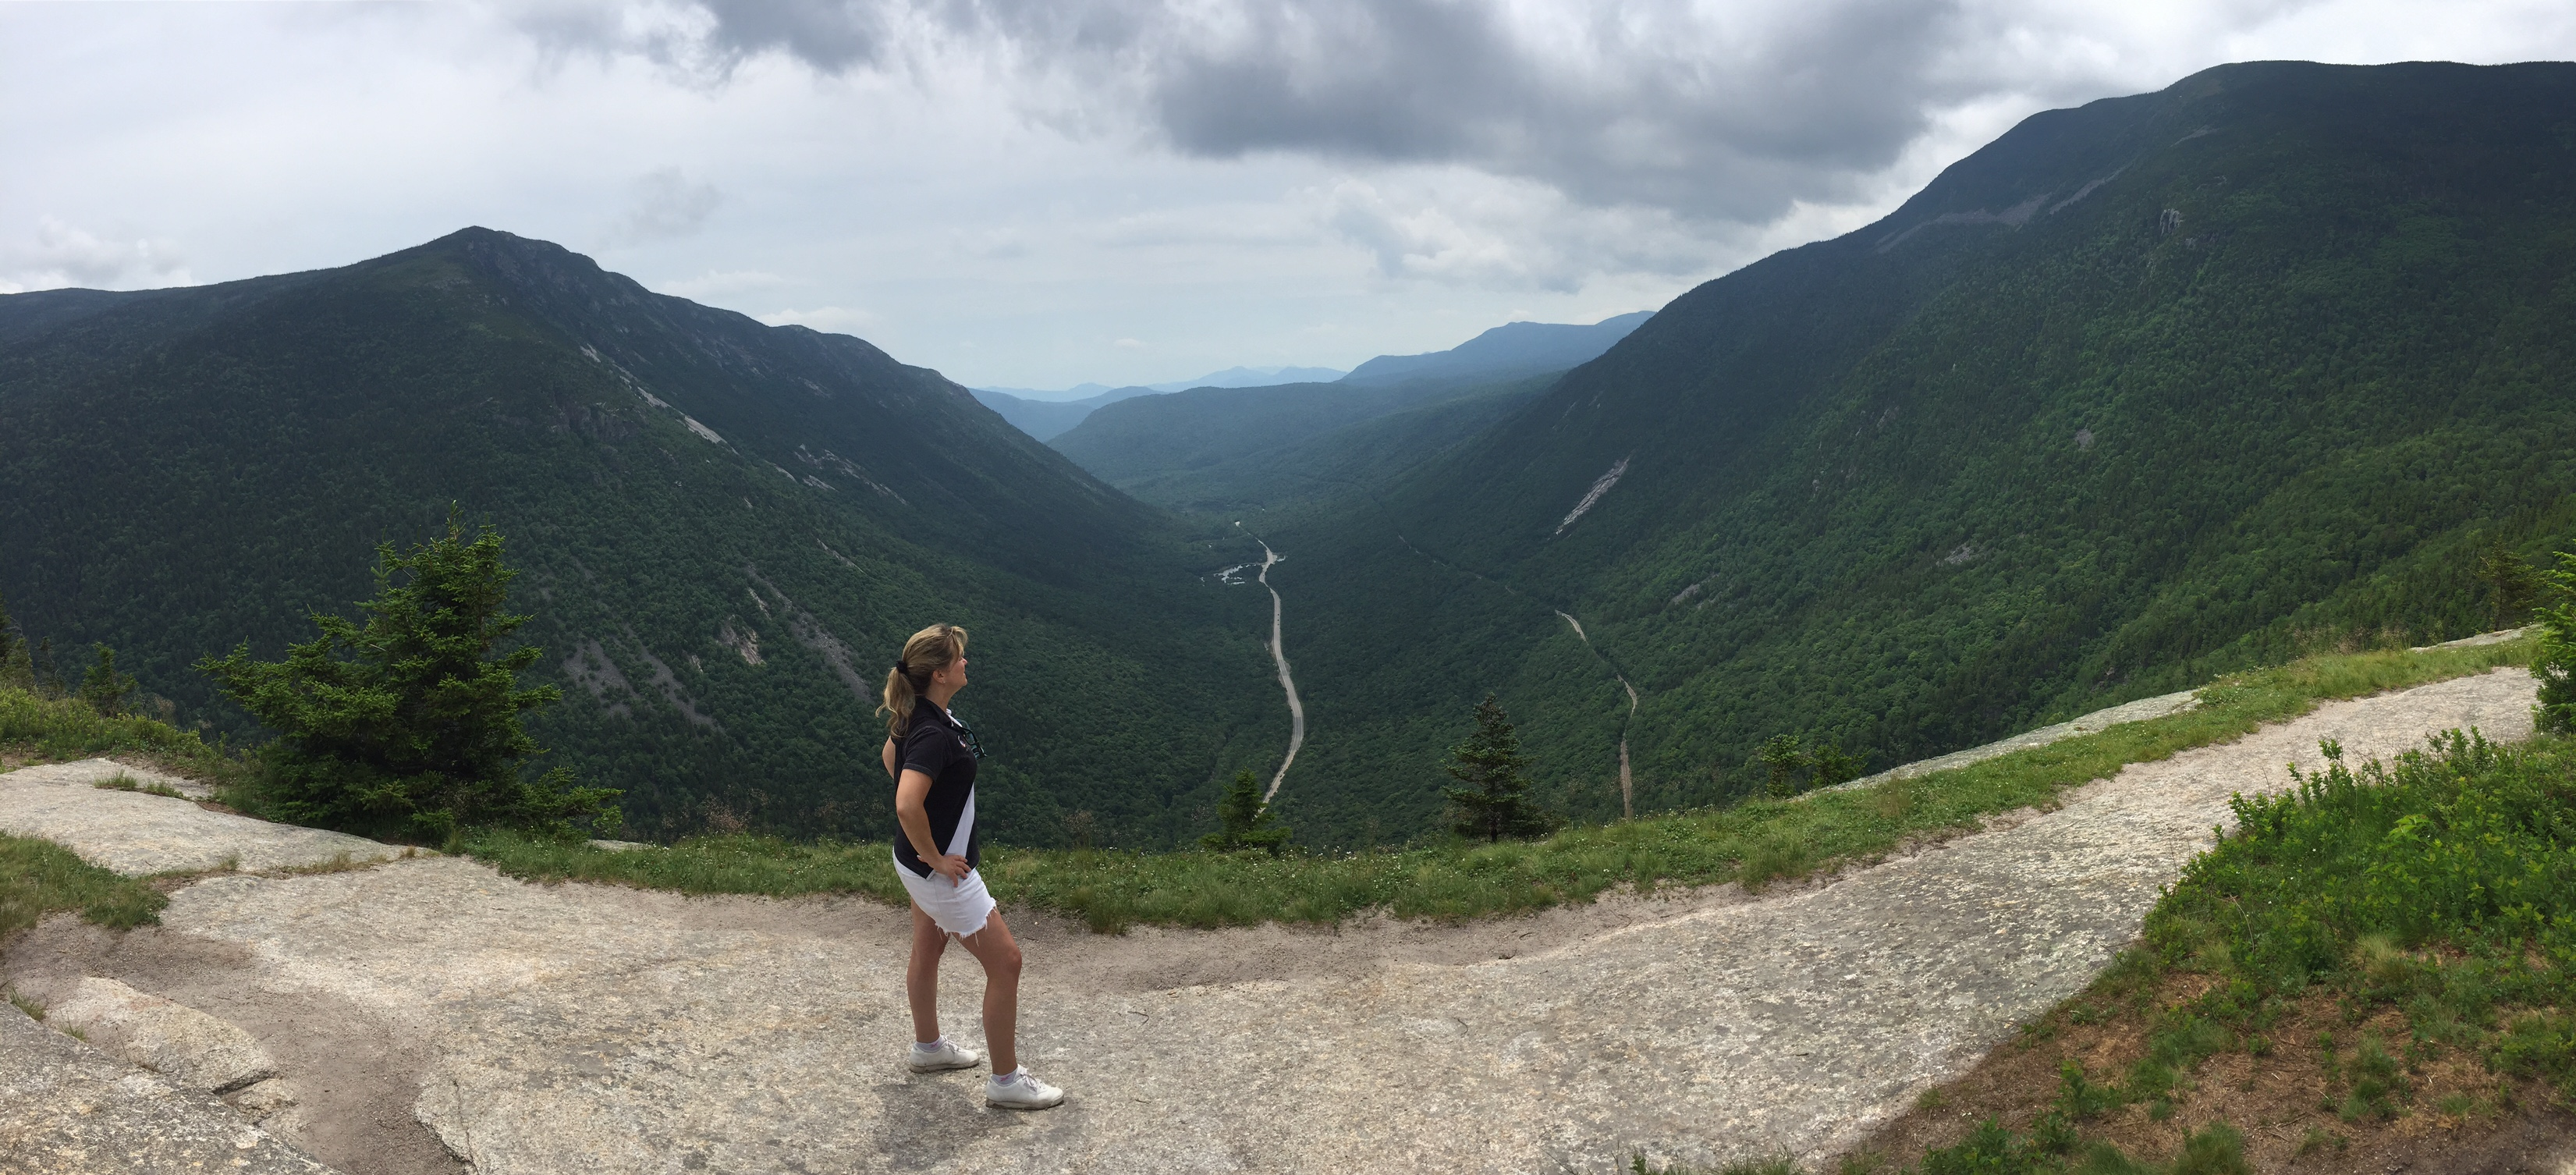 Sandra Ierardi - Mt. Willard, NH